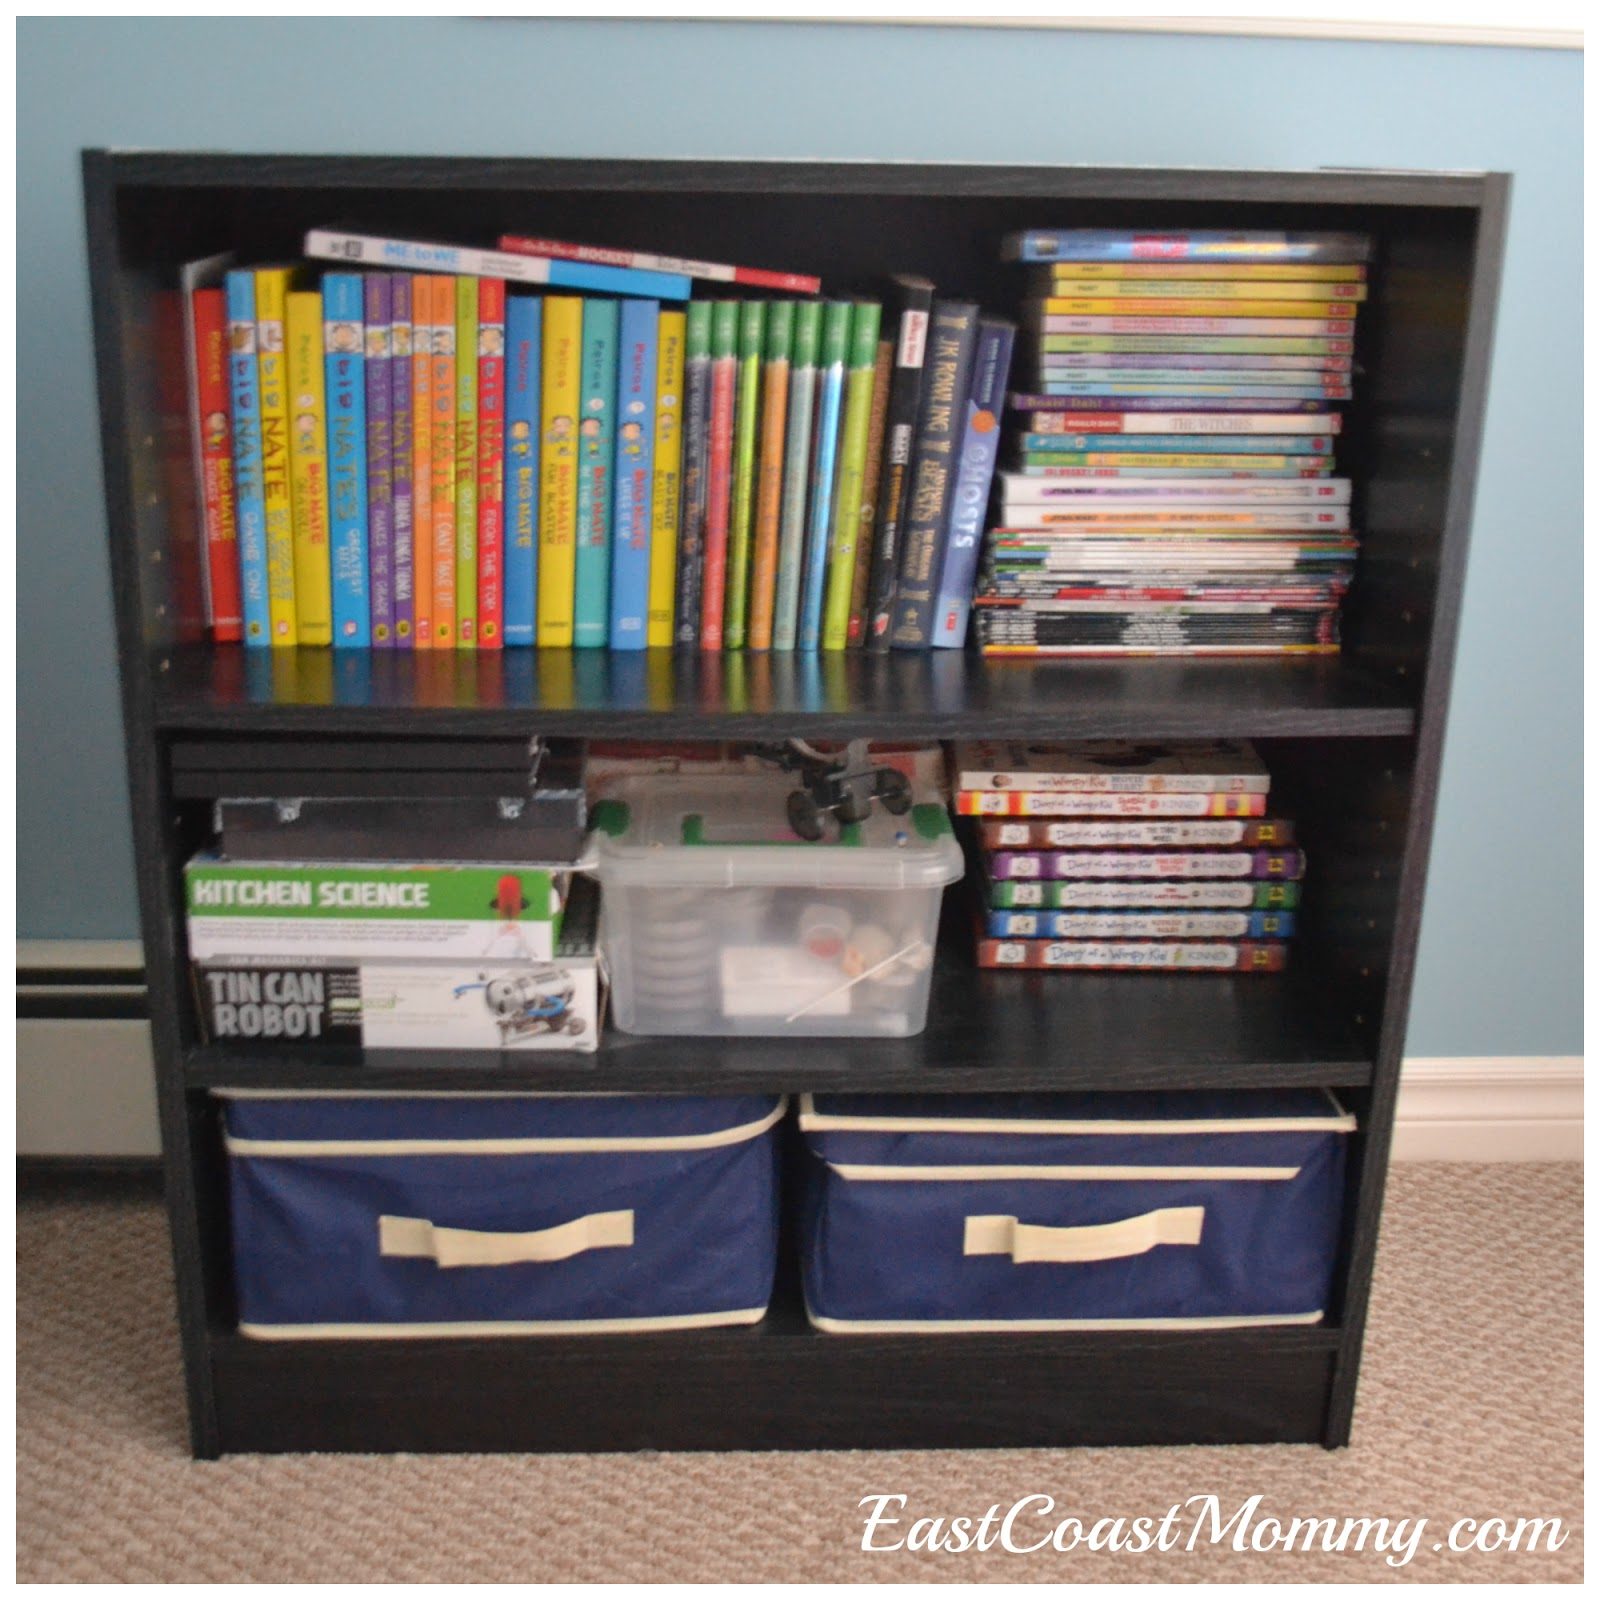 East coast mommy shared hockey bedroom on a budget revealed for Cheap book storage